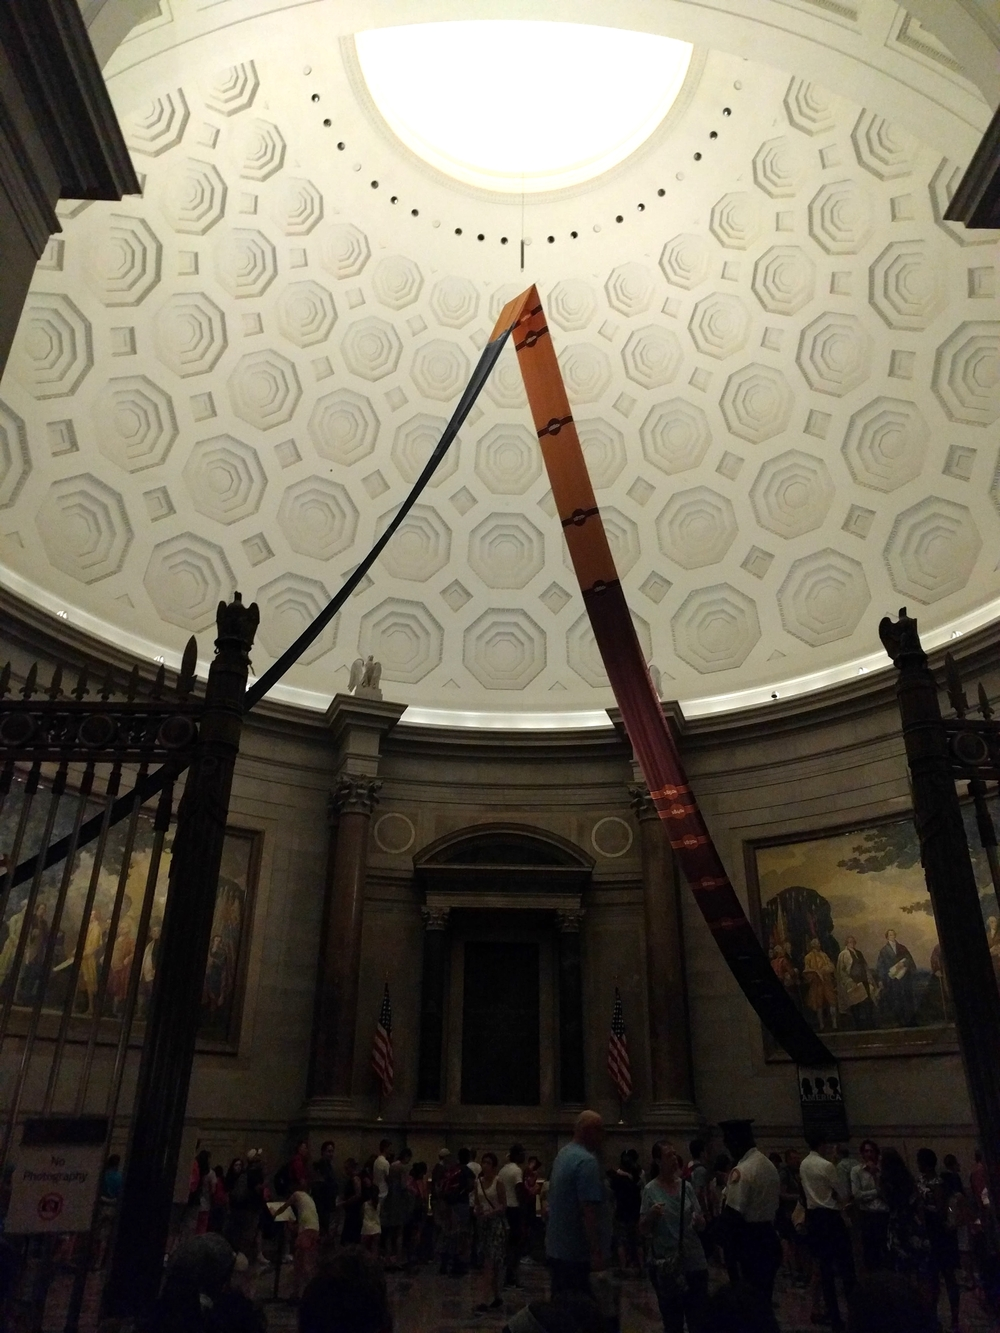 Inside the rotunda at the National Archives